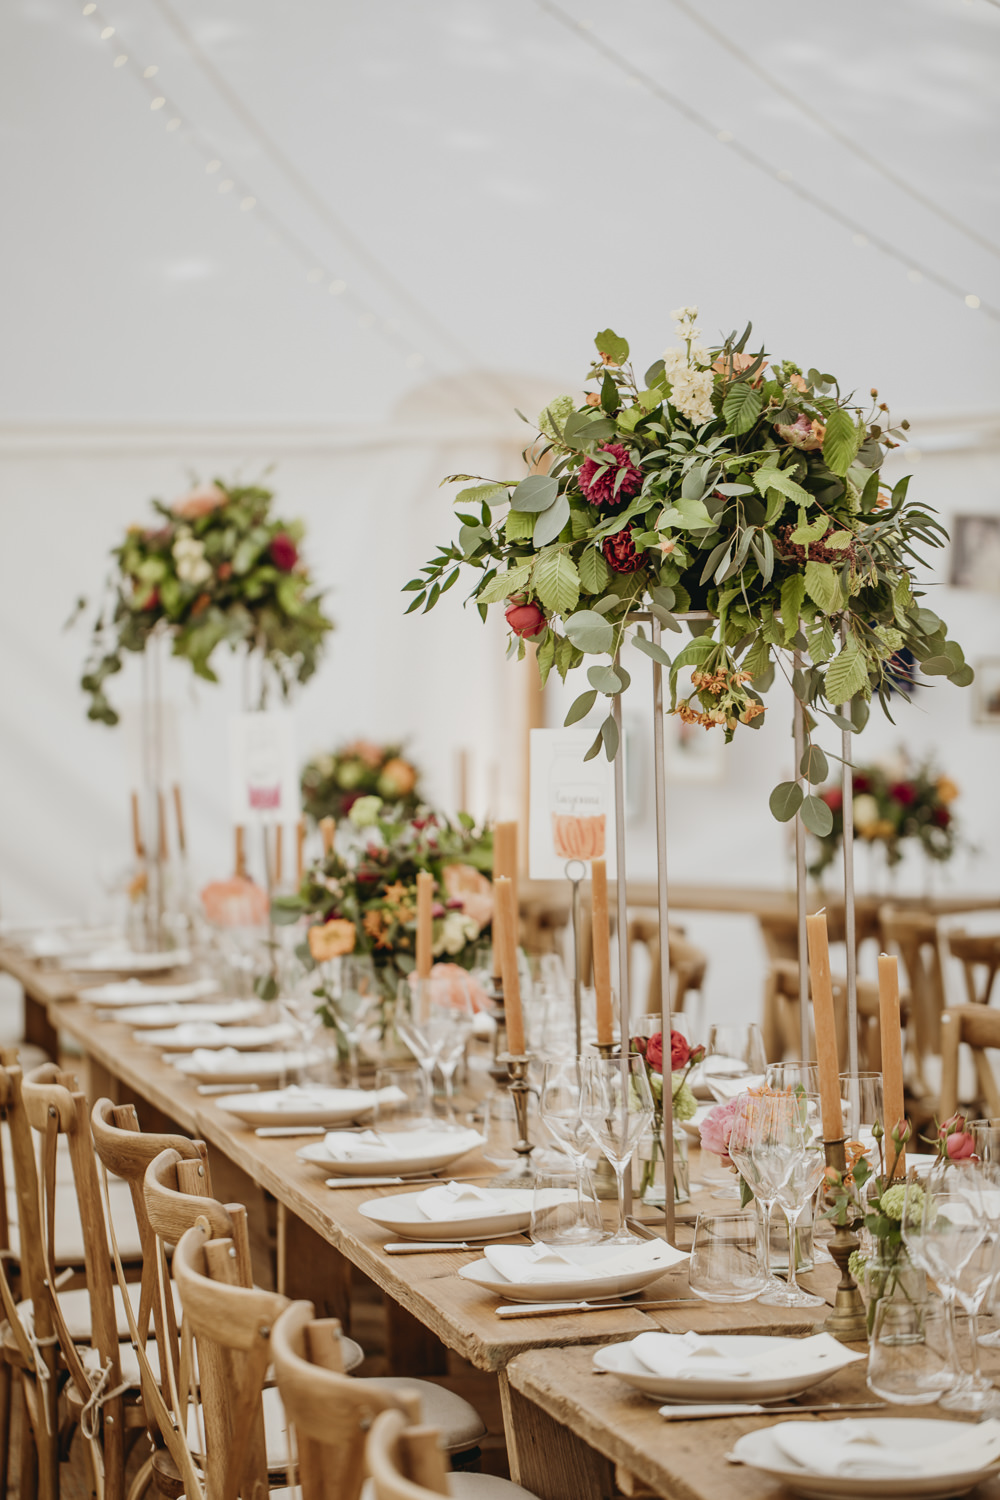 Long Wooden Tables Cross Back Chairs Tall Flowers Arrangements Centrepiece Greenery Foliage Kent Marquee Wedding Lily Bungay and Co